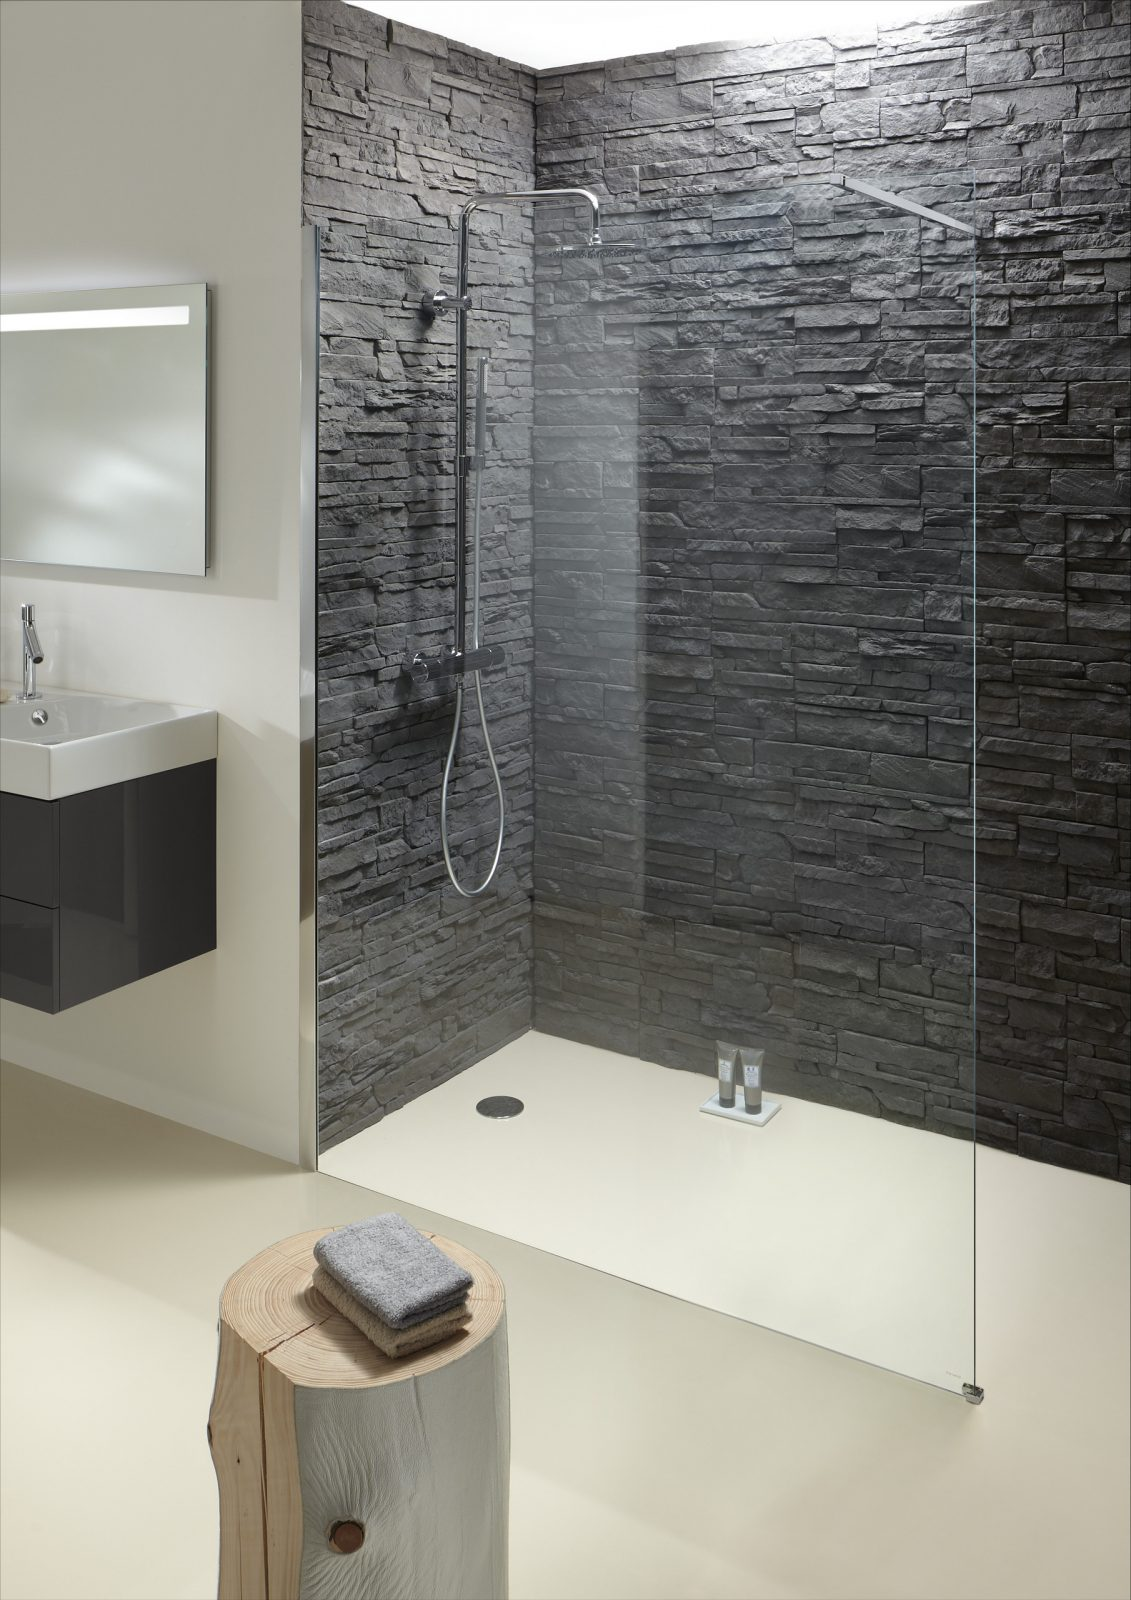 fiche produit de la salle de bains parois de douche. Black Bedroom Furniture Sets. Home Design Ideas